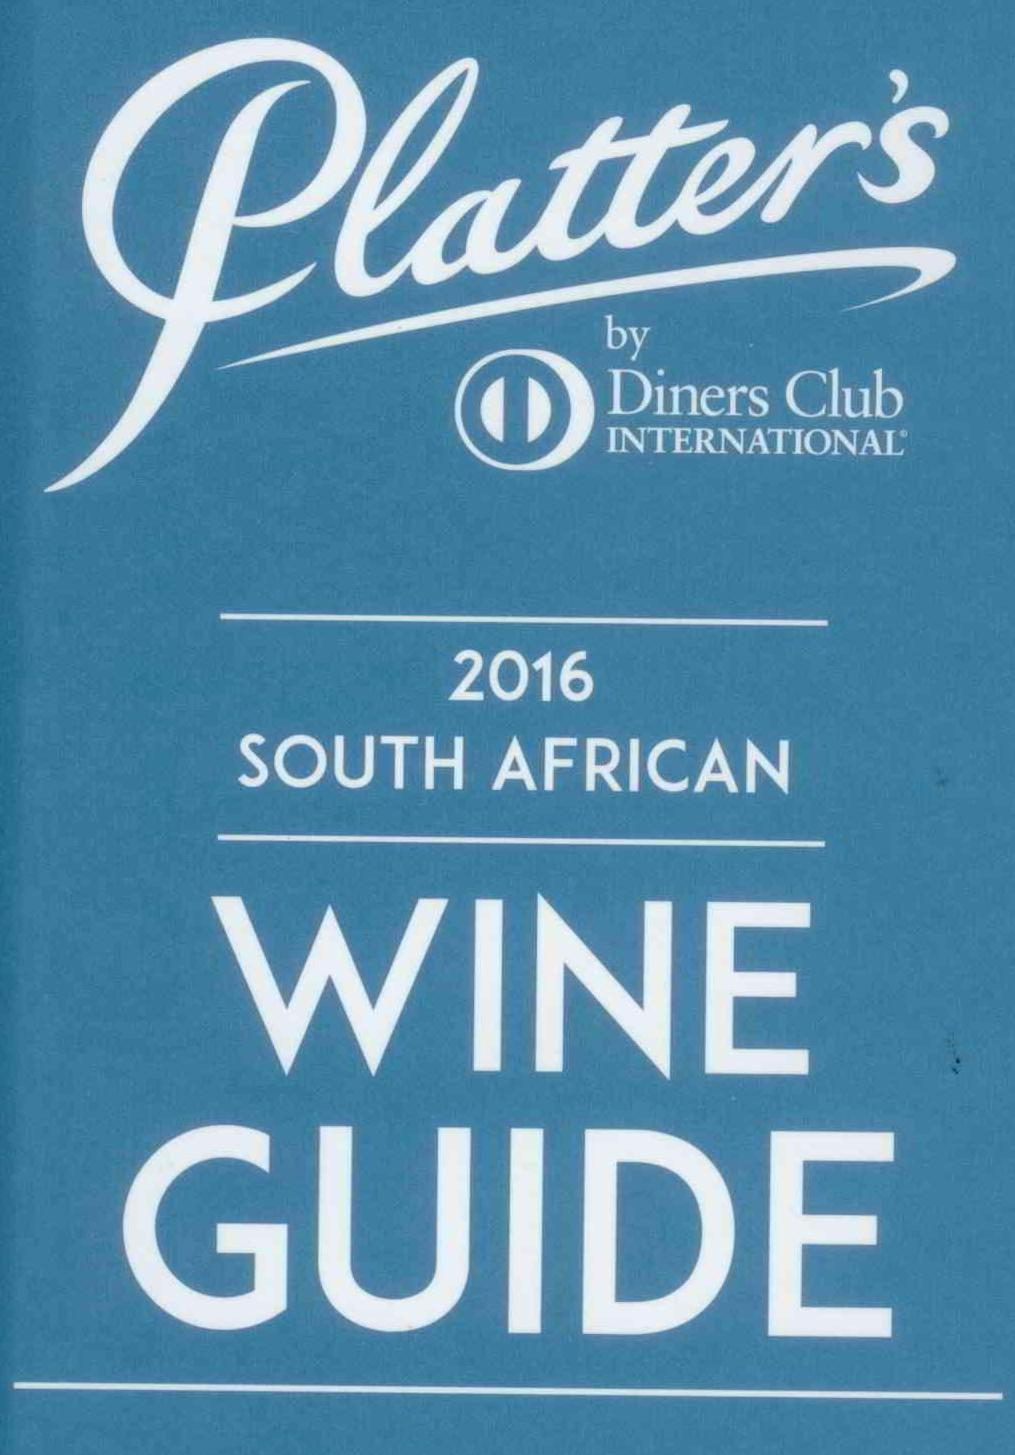 Percy Tours Hermanus in 2016 John Platter wine book of South Africa